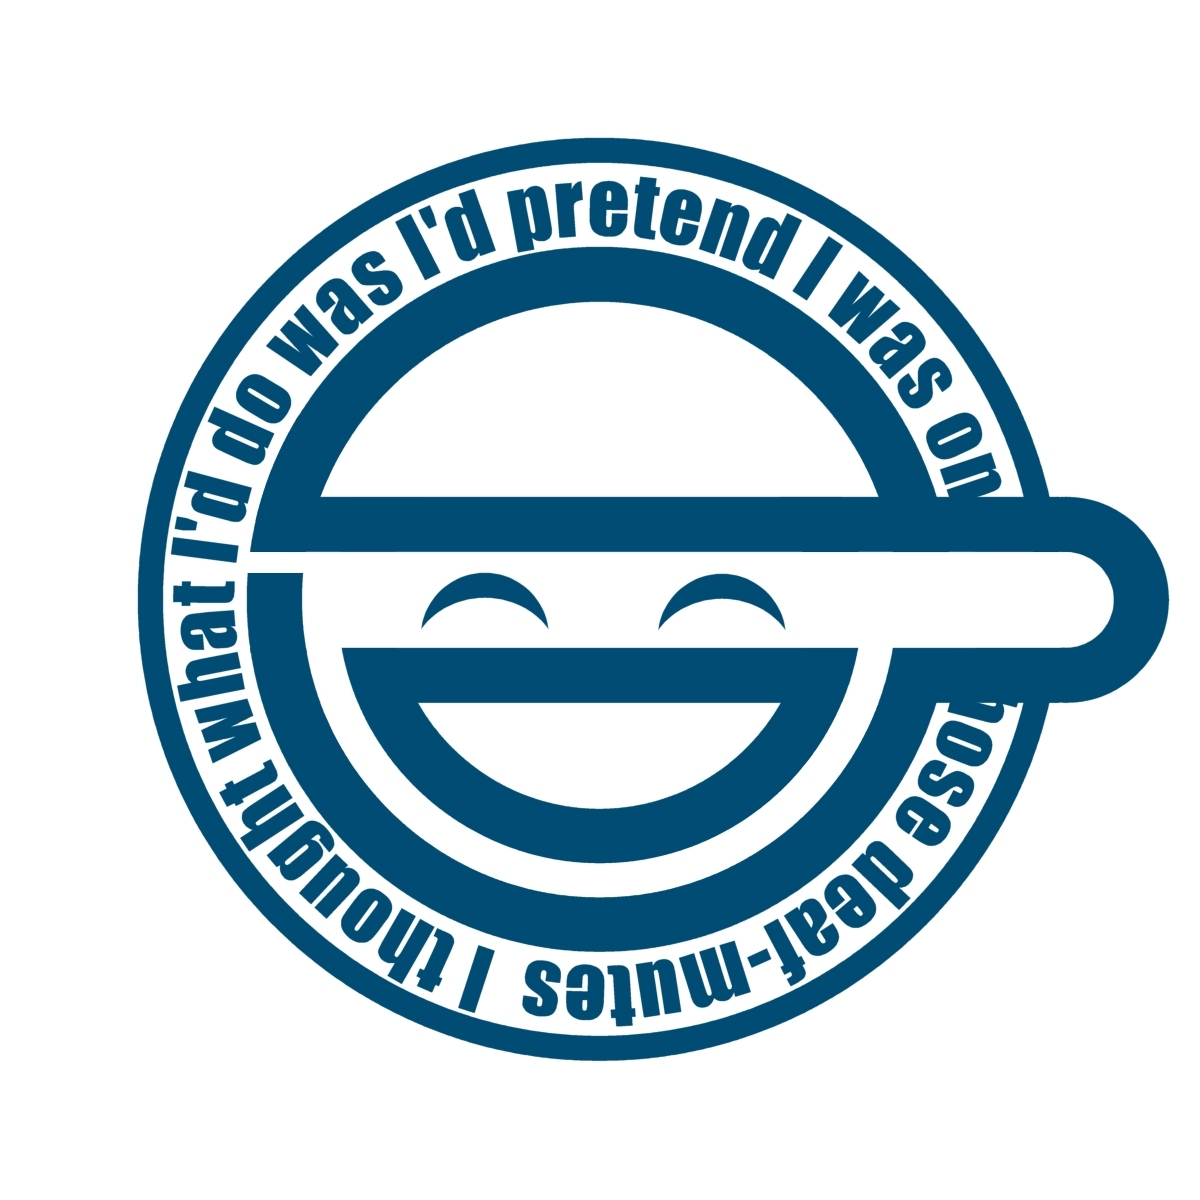 laughing man logo - photo #6